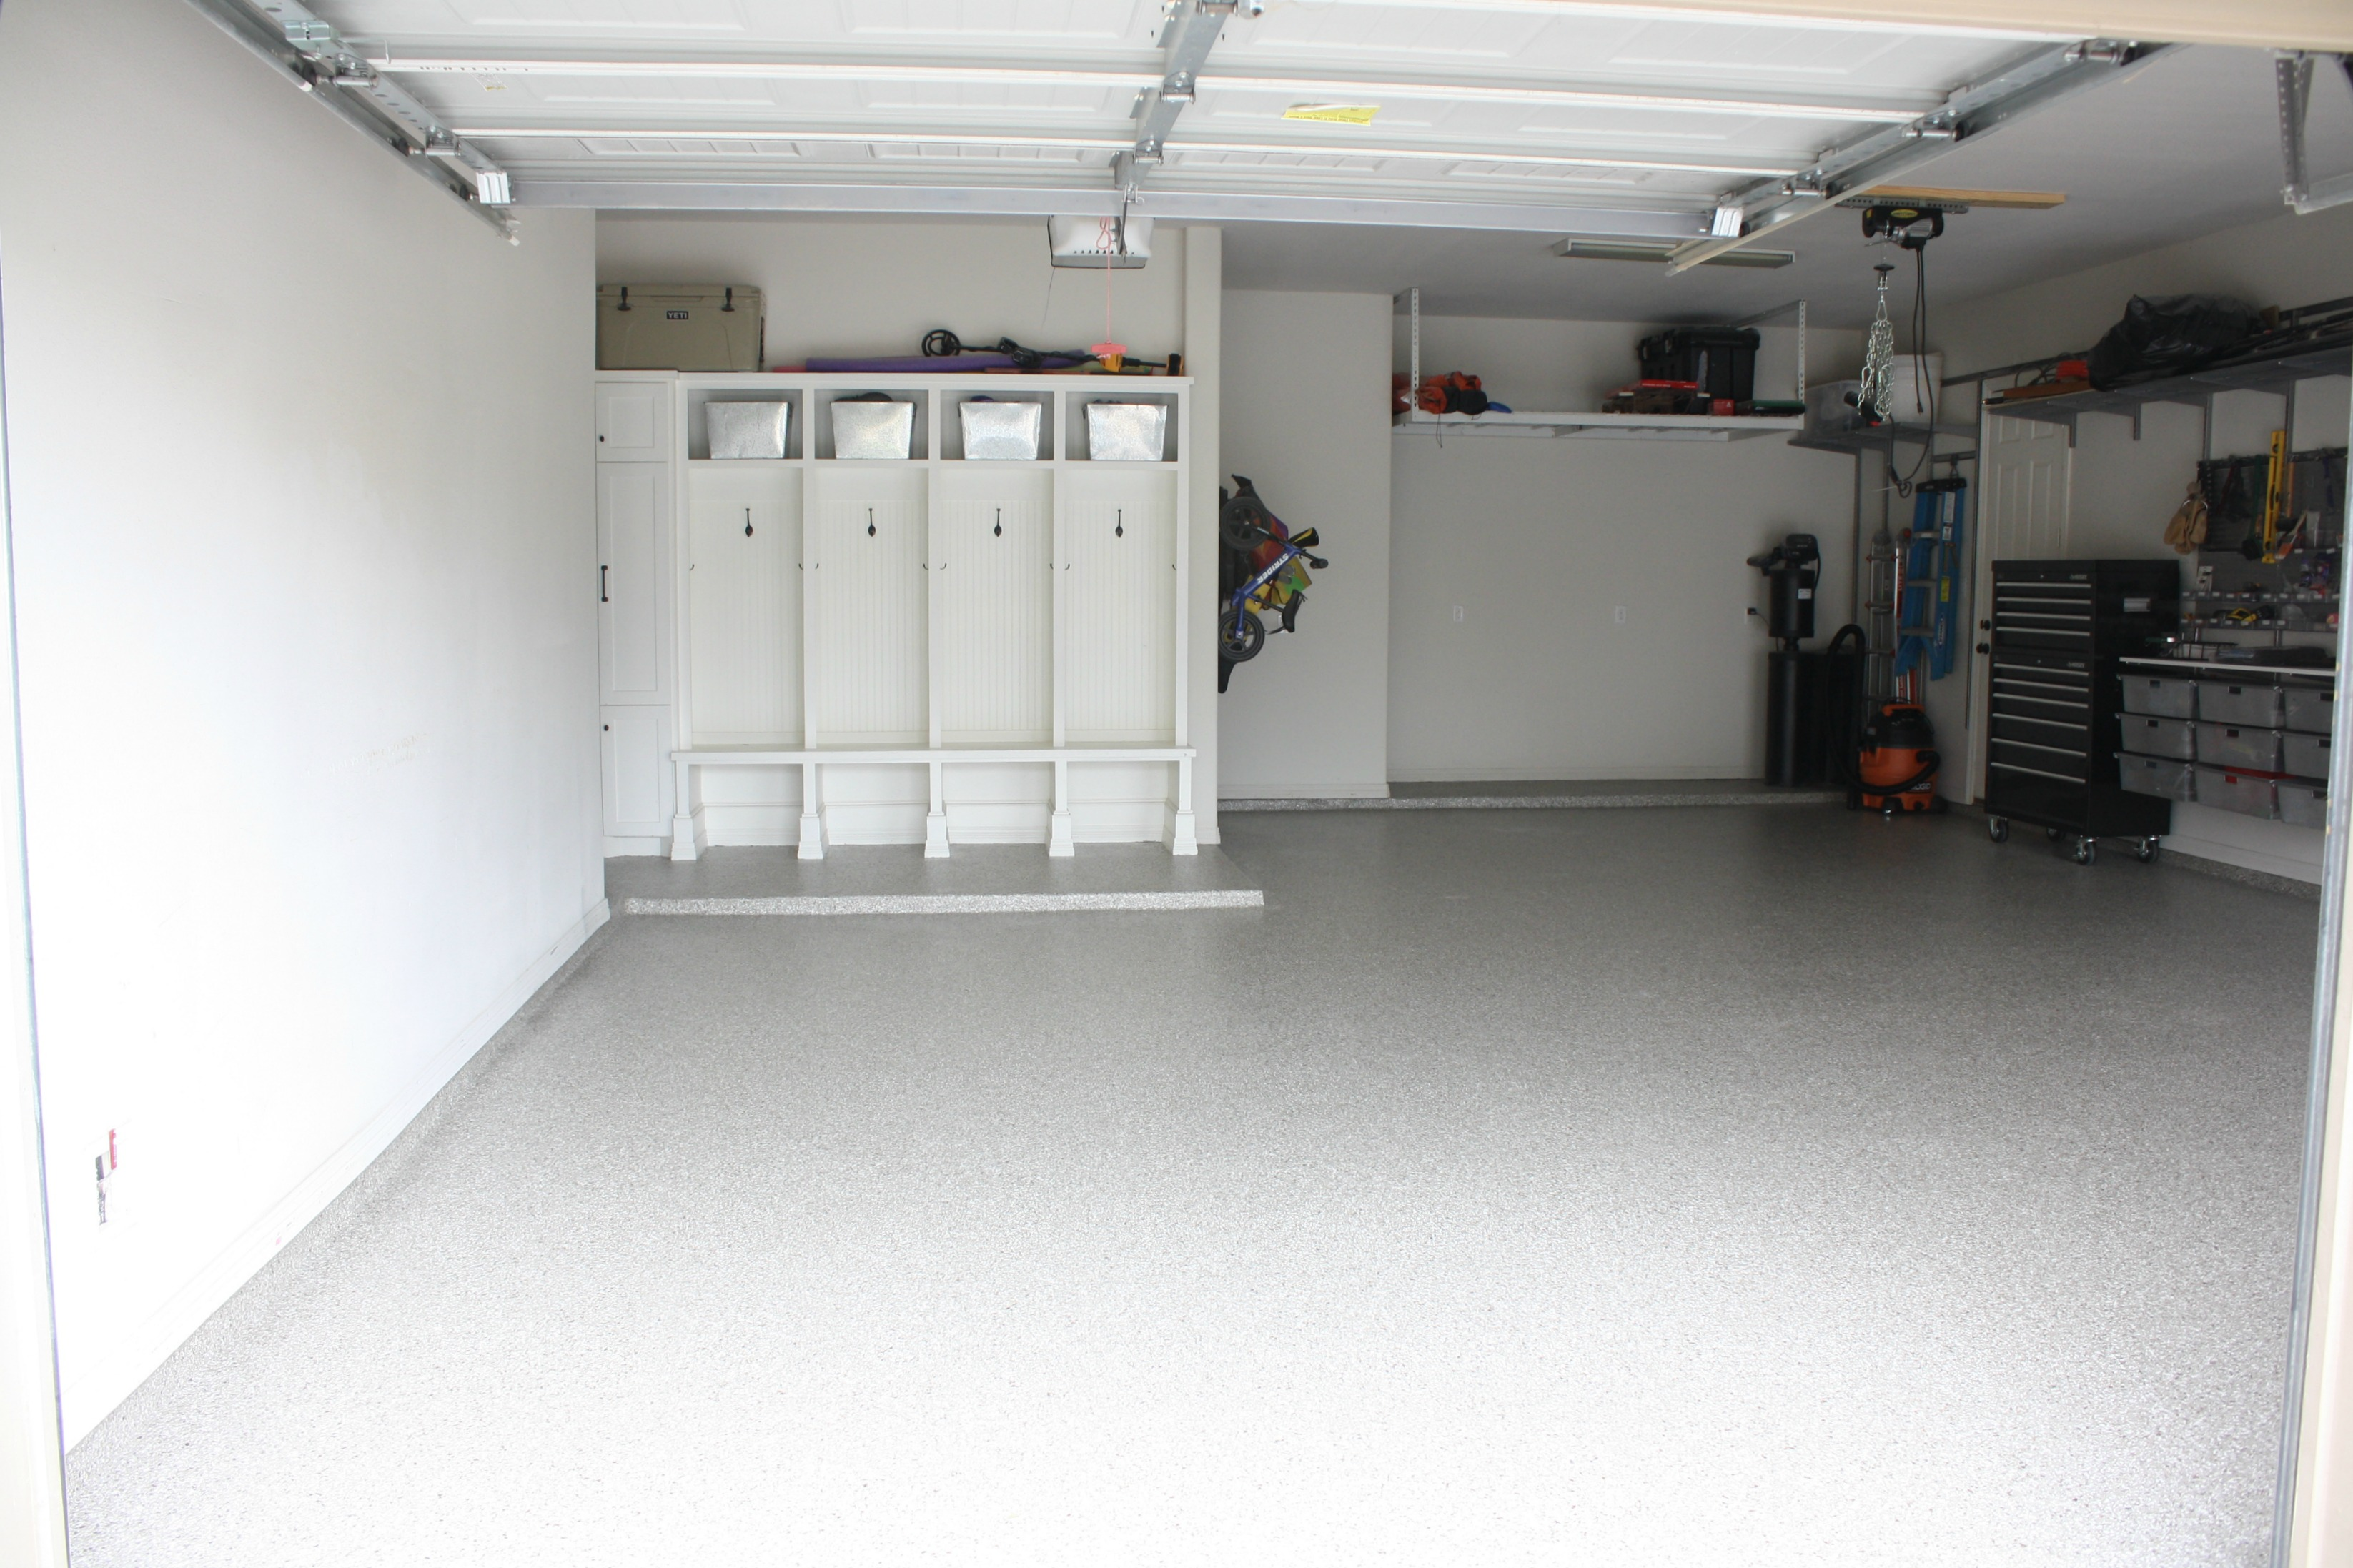 How to get spray paint overspray off garage floor new for How to clean off spray paint on concrete